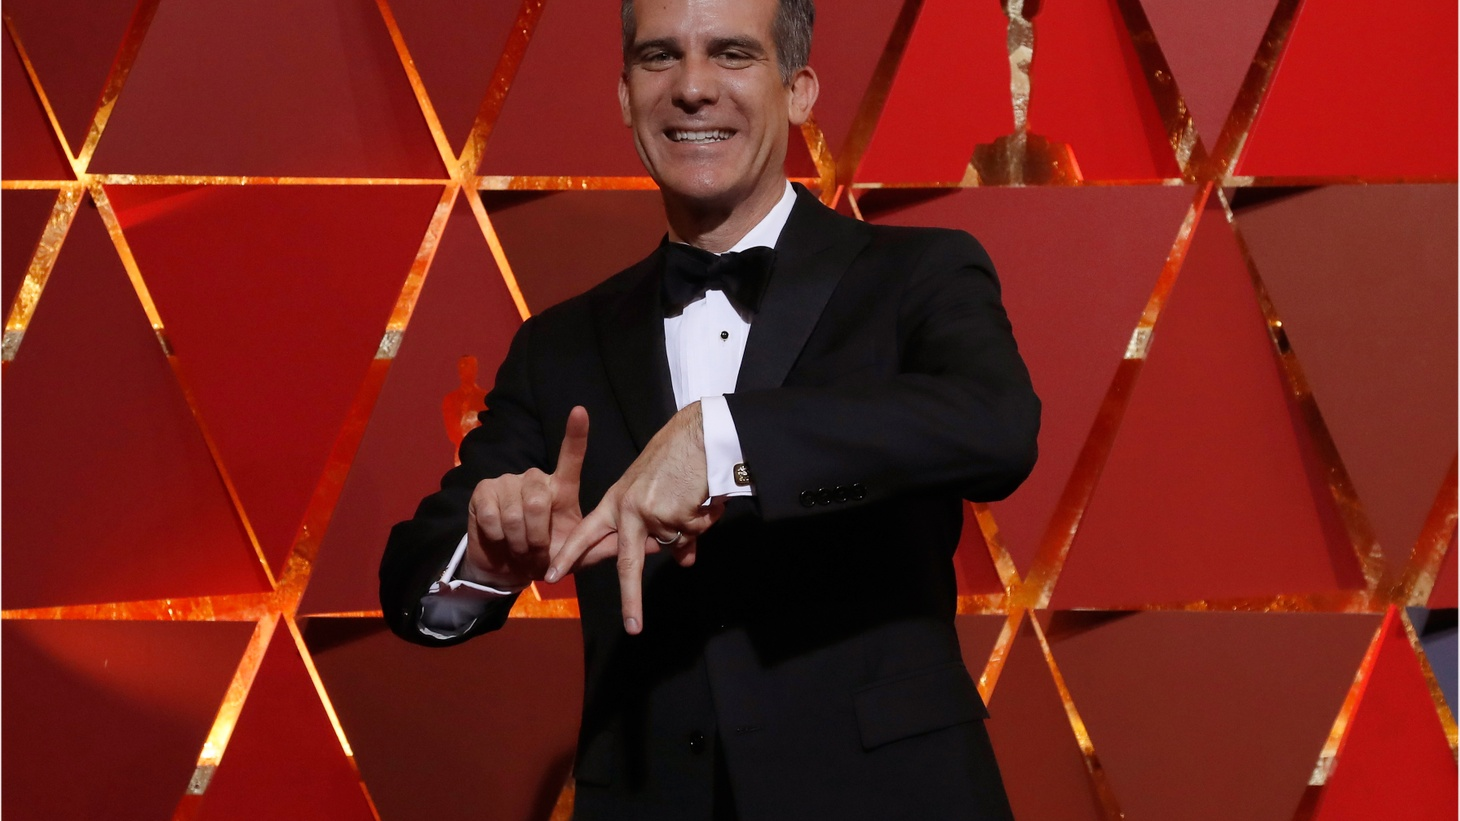 Tuesday's election in Los Angeles gave a big win to Mayor Eric Garcetti and the city council members up for re-election. Also, voters said no to a measure that would have temporarily stopped development.